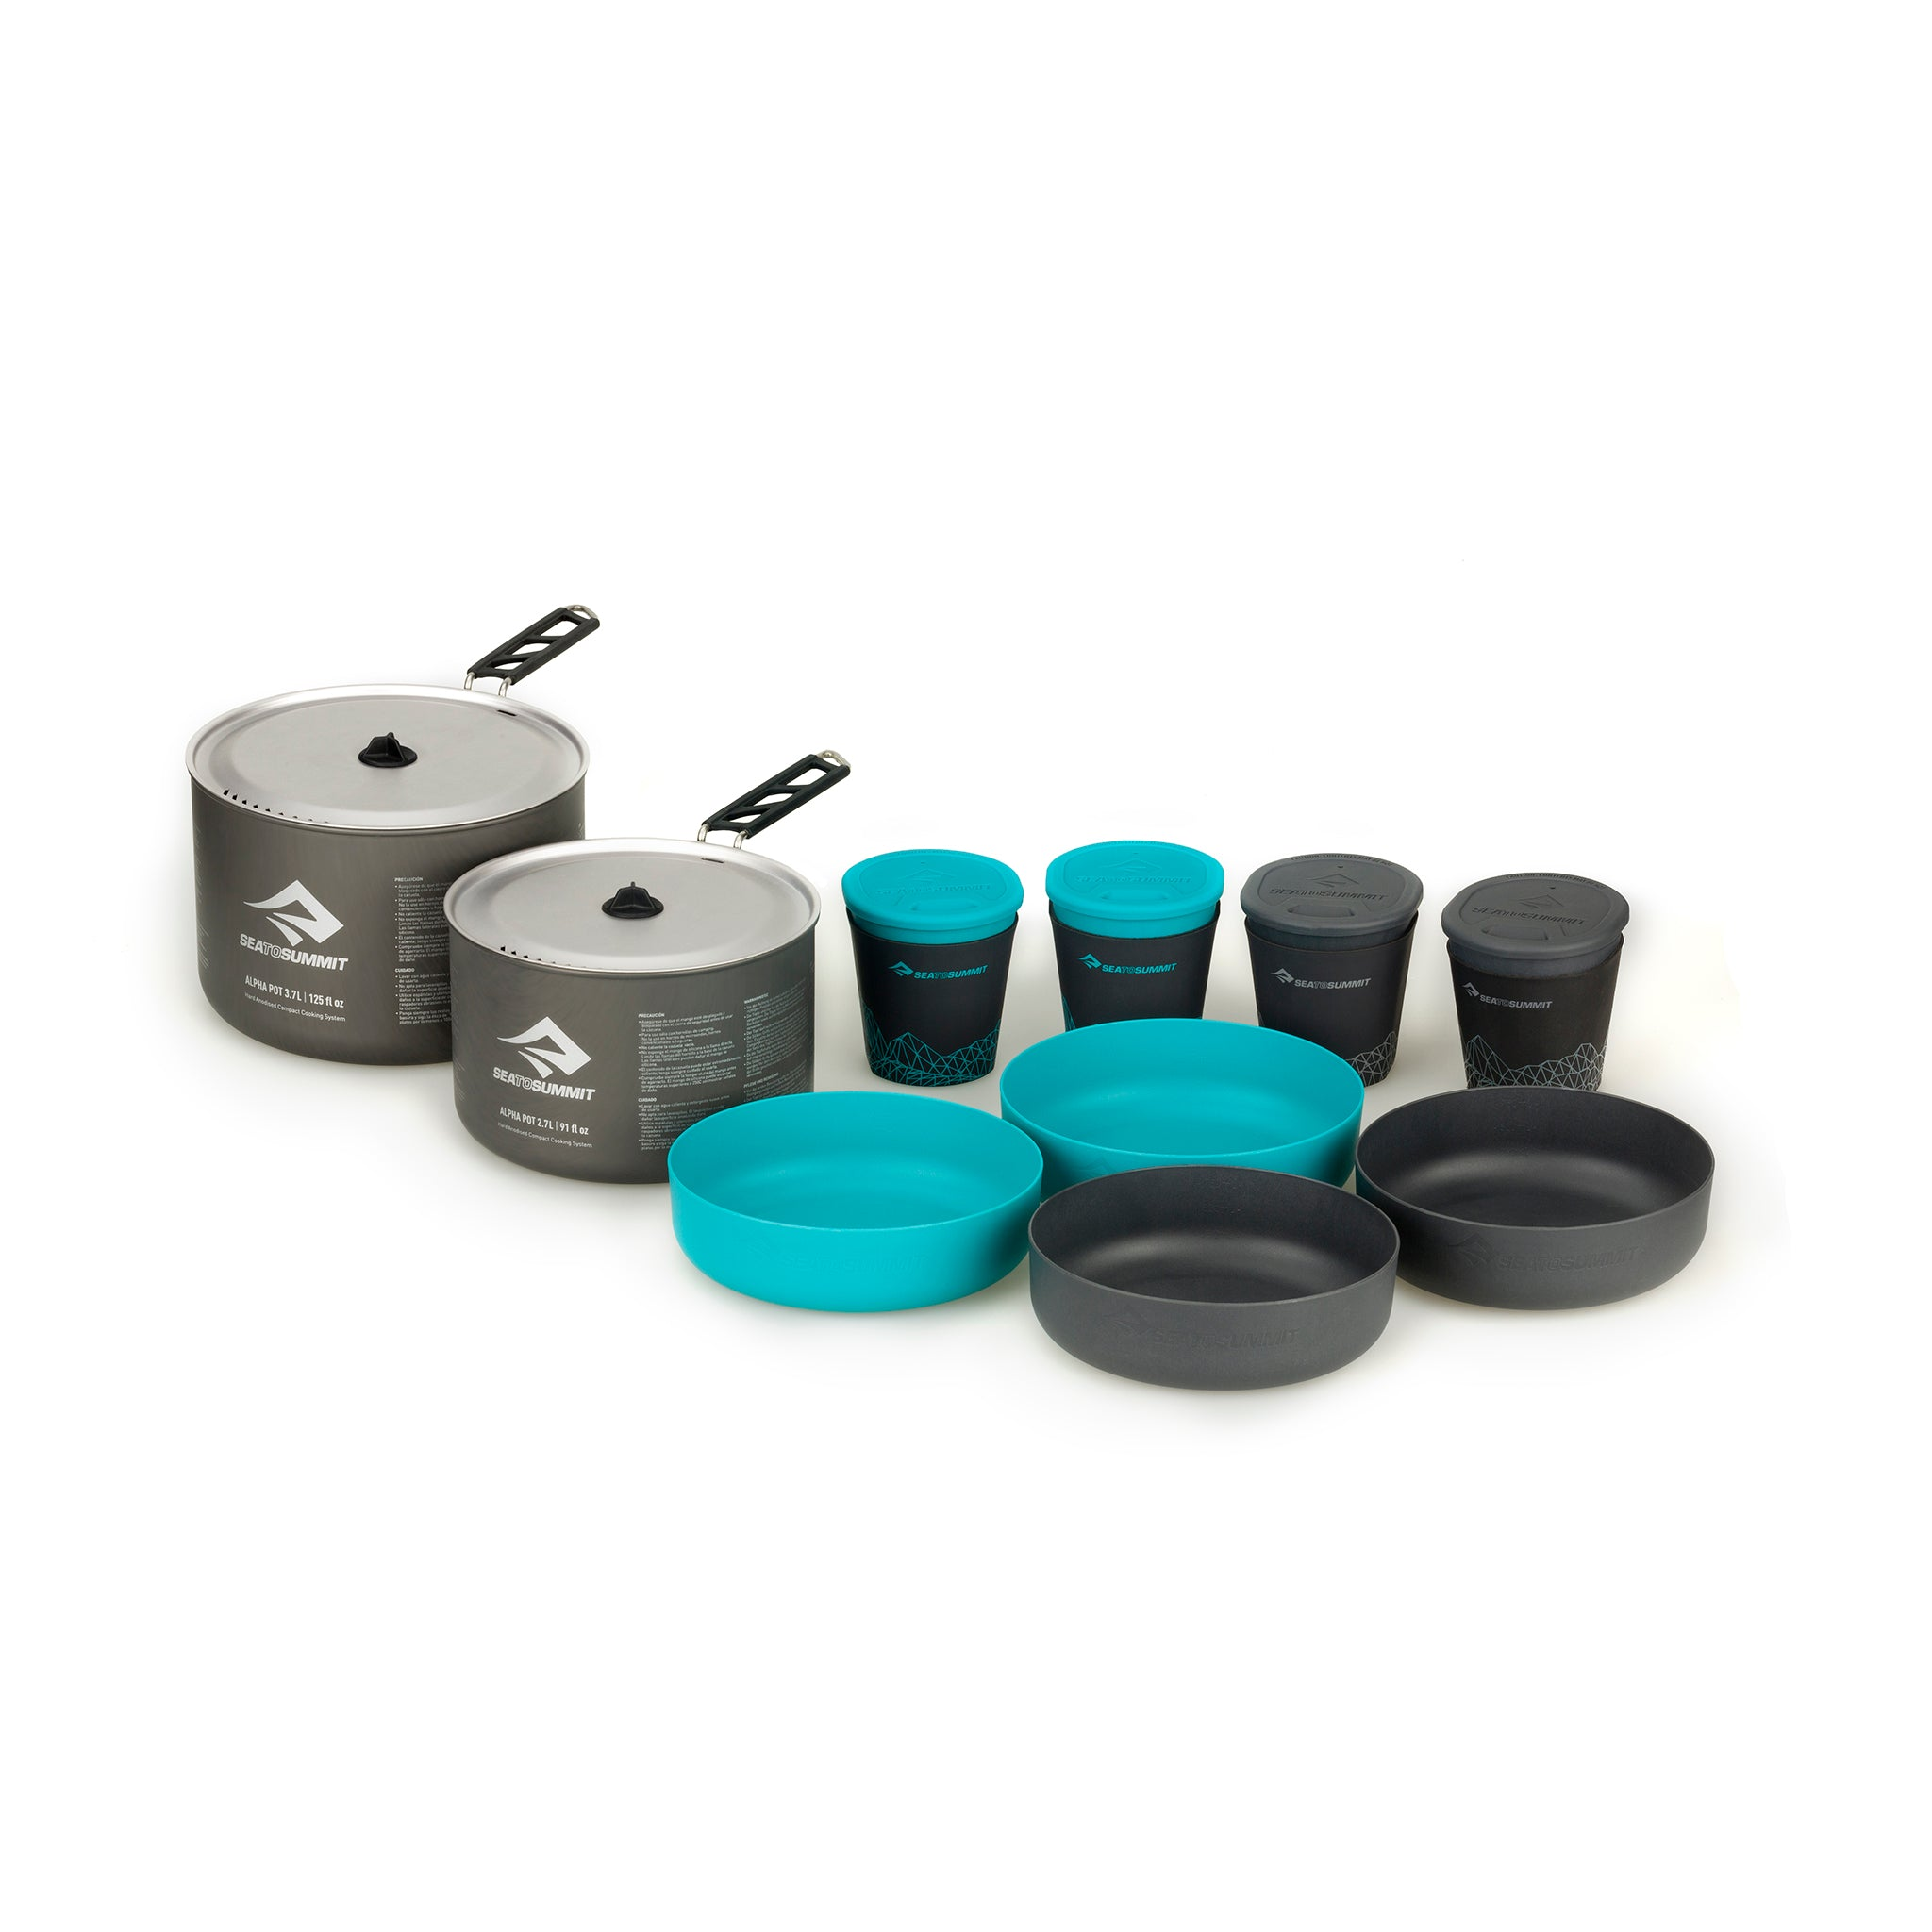 Alpha 2 Pot Cook Set 4.2 _ backpacking cook set _ pot bowl and mug _ family